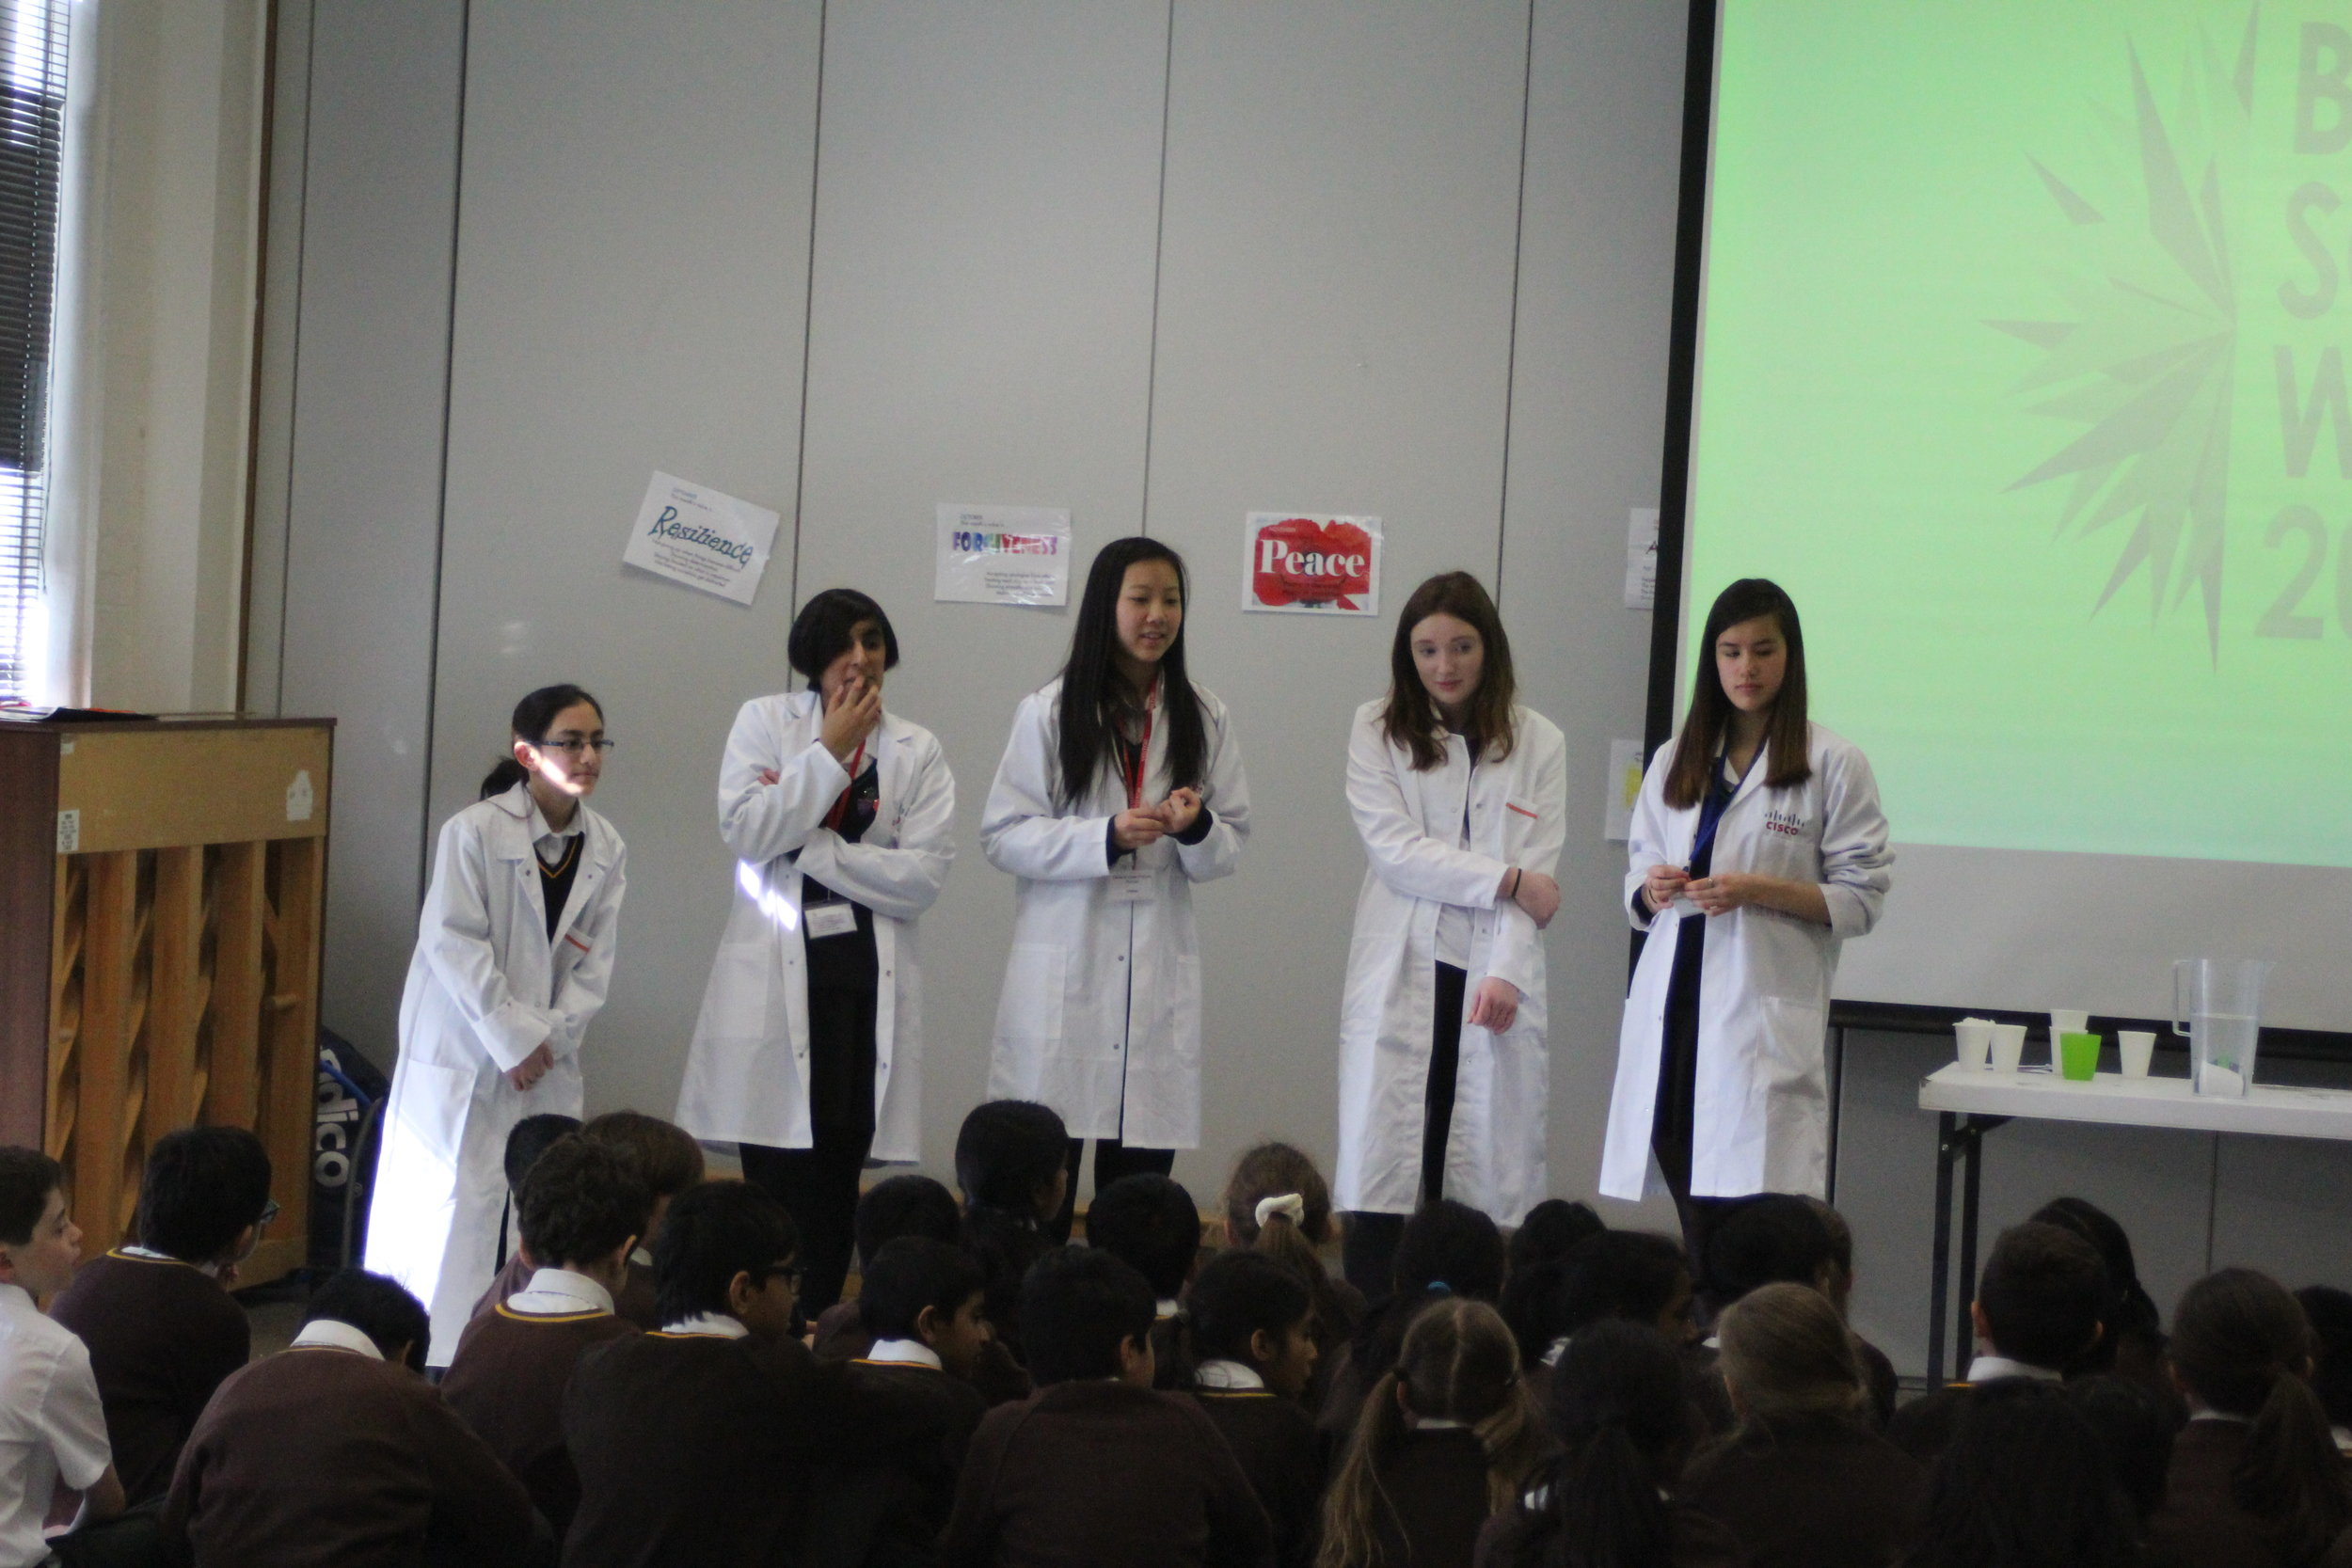 Back in 2016, Sarah organized and led a STEM workshop day at a local primary school. On this photo, you can see her speaking in front of all the kids (far right of the picture).